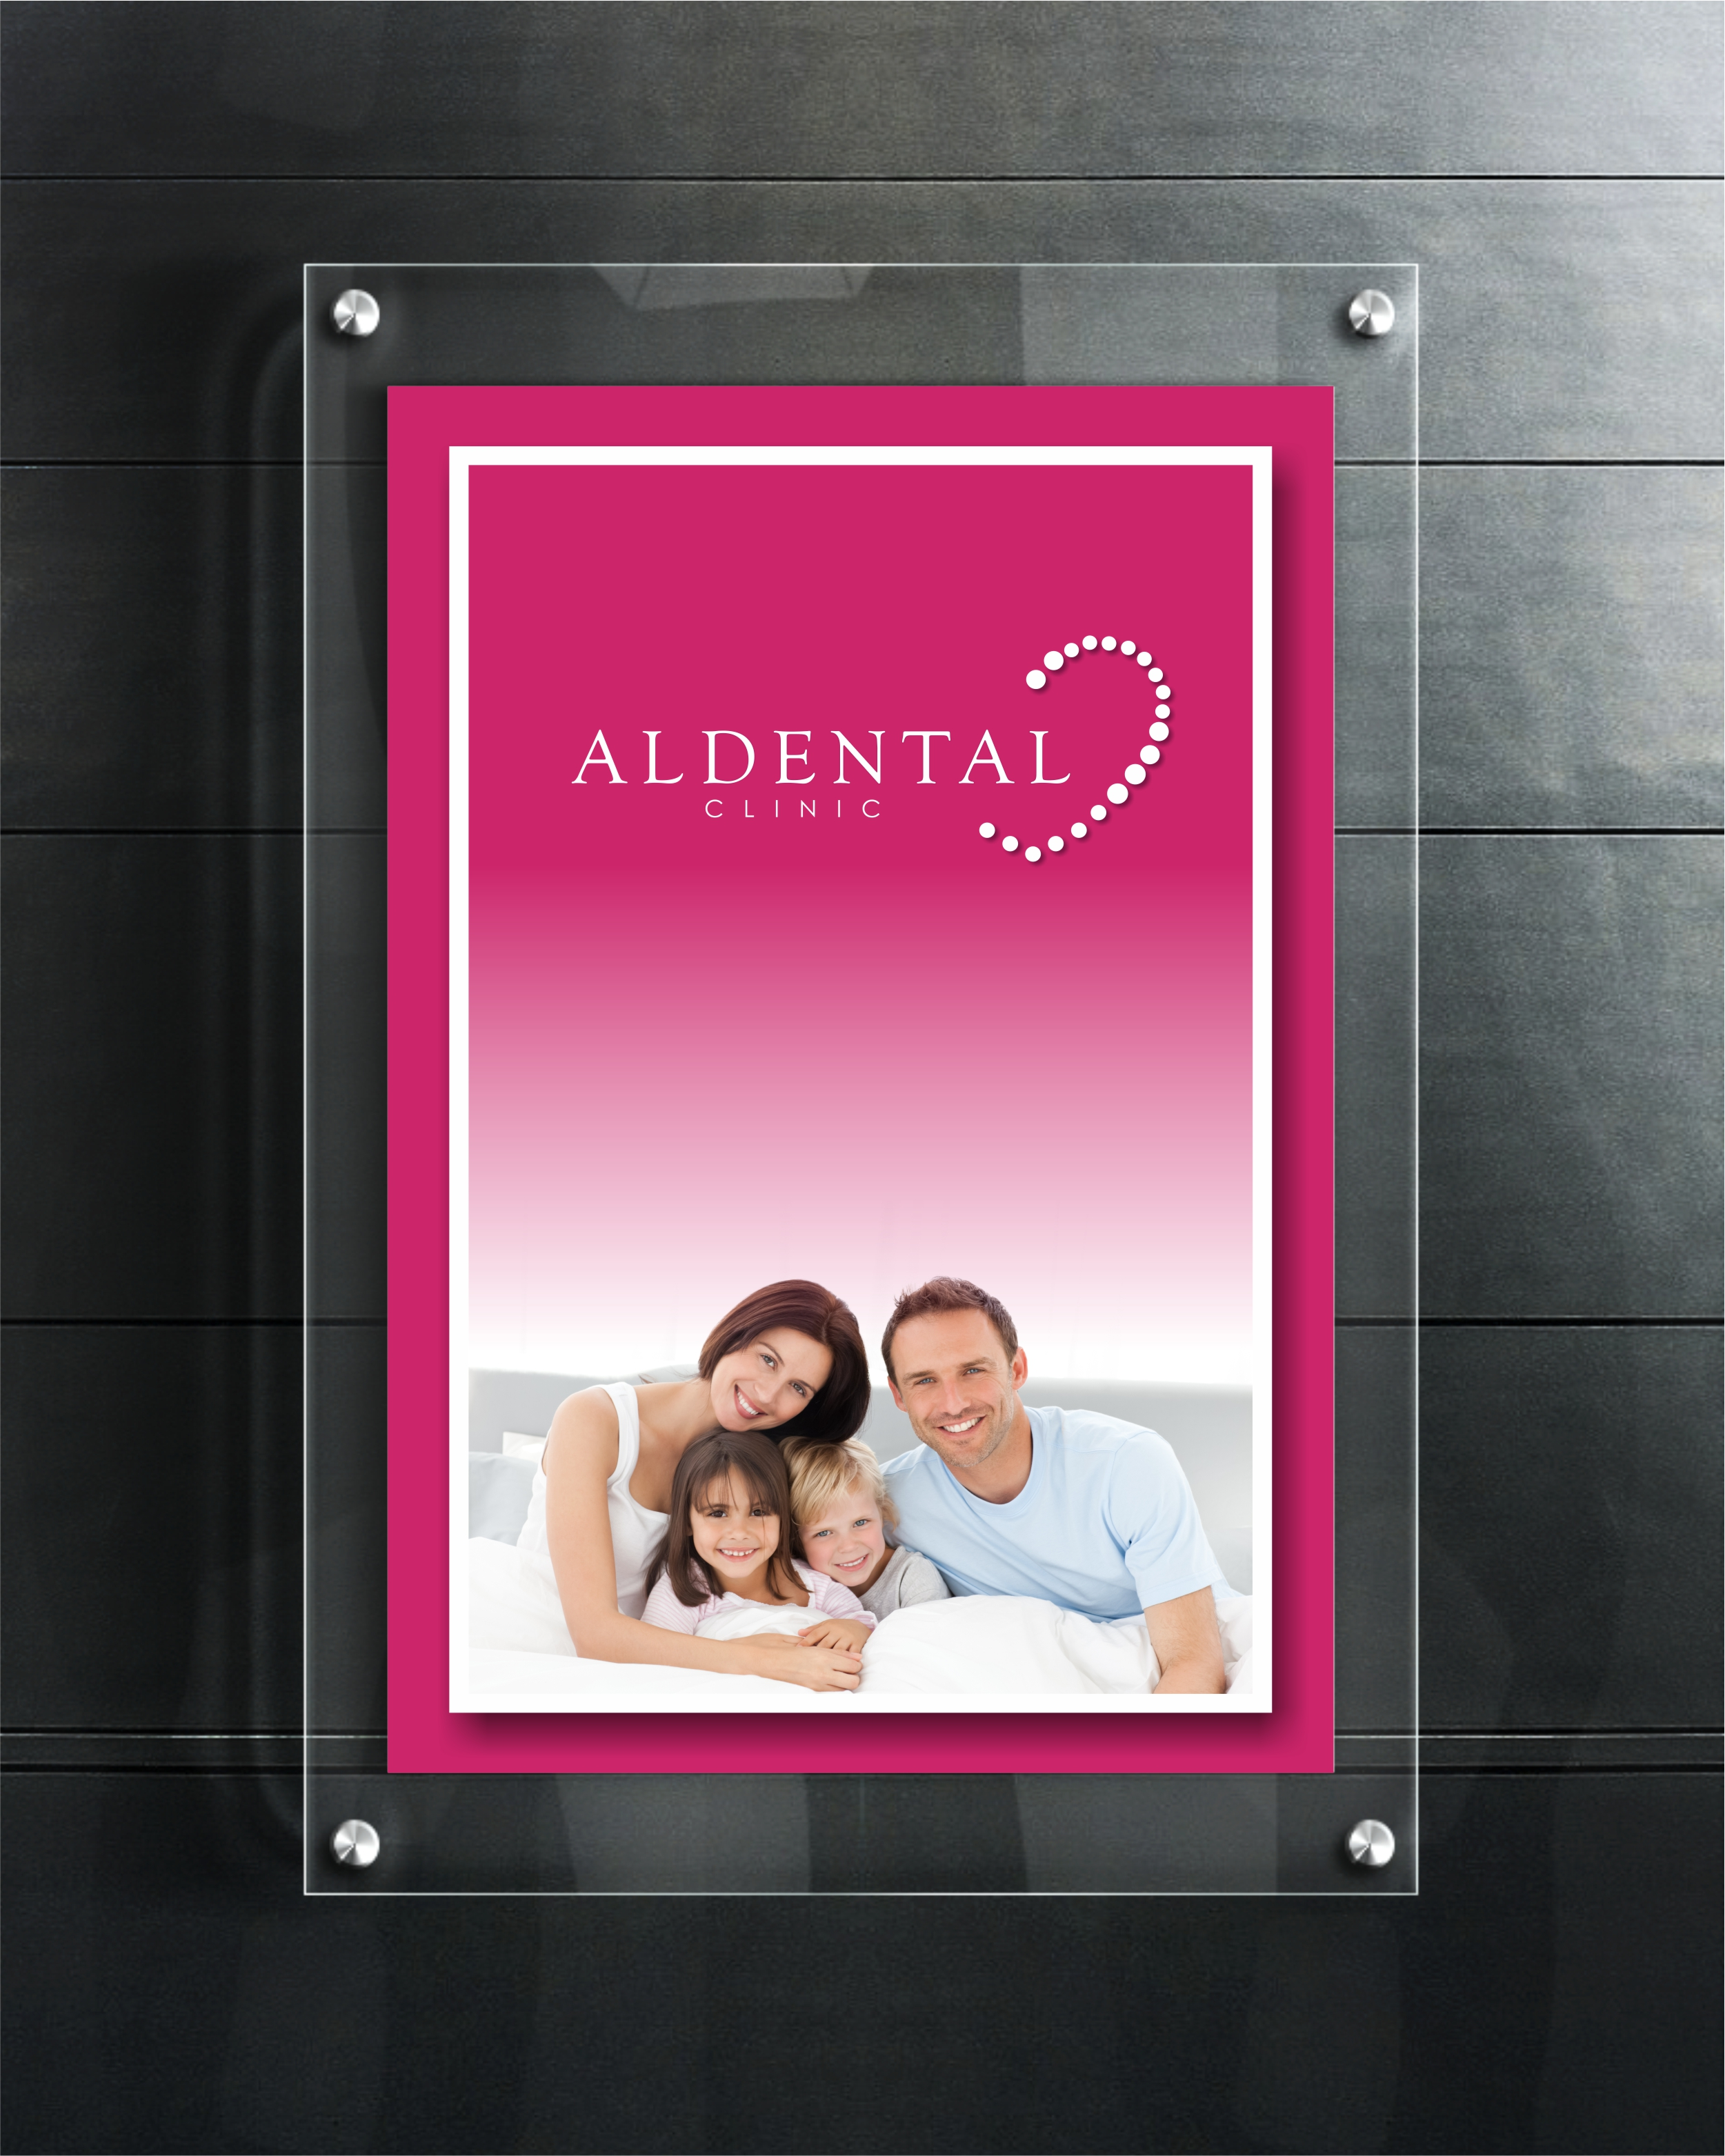 ALDENTAL CLINIC